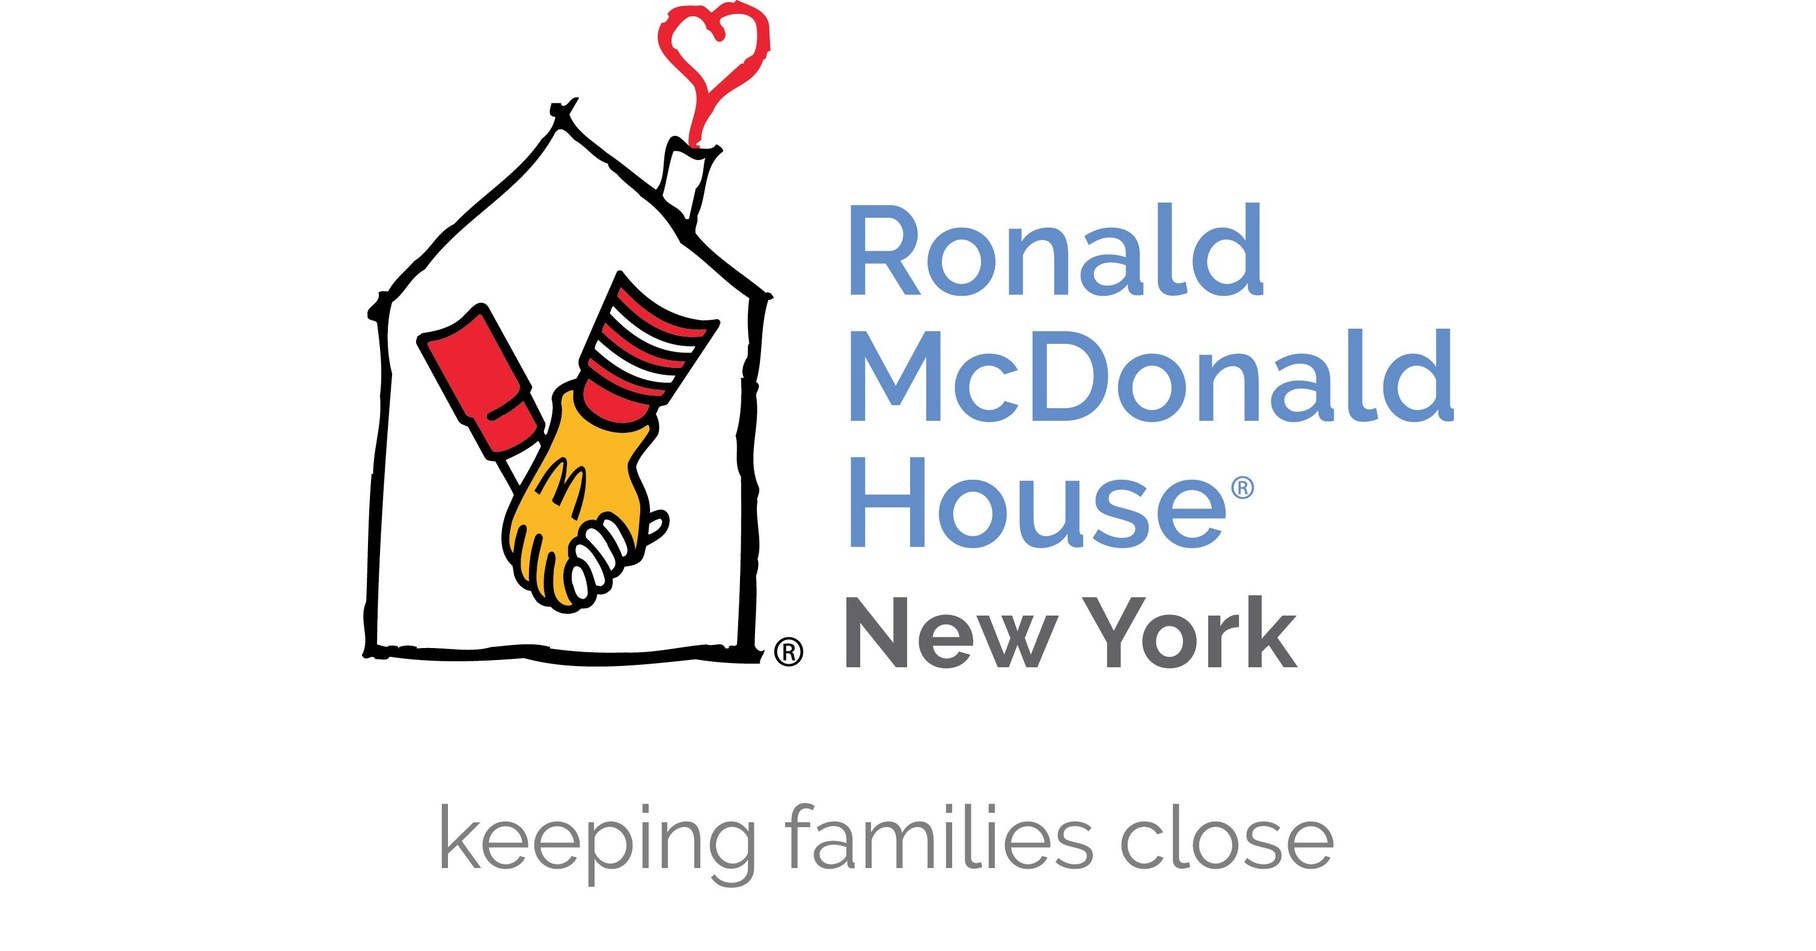 Teachers Project: Ronald McDonald House